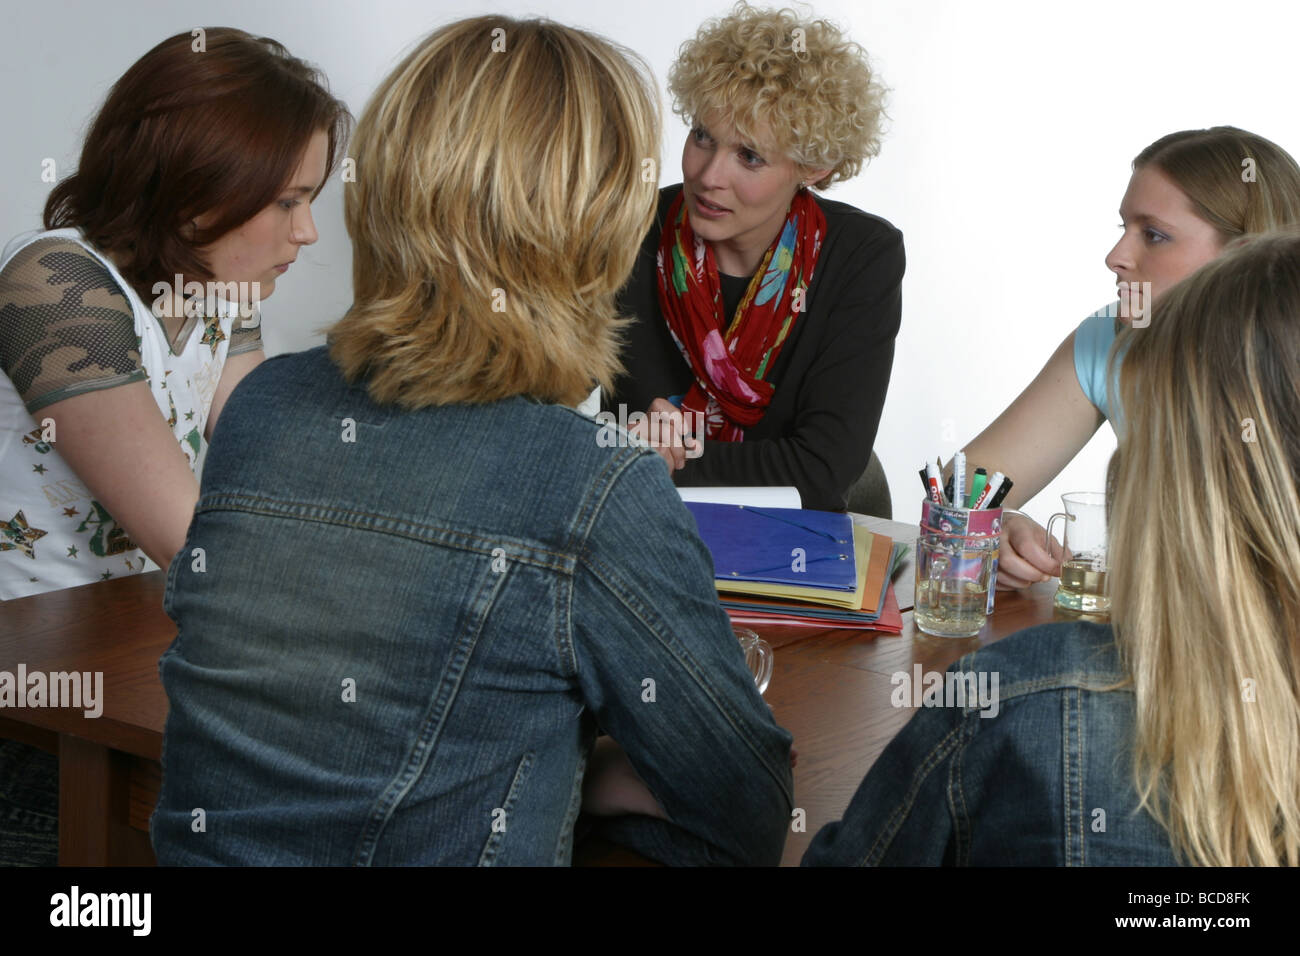 Youth worker or teacher talking with problem teenagers. The  adult woman is having a serious conversation with the - Stock Image